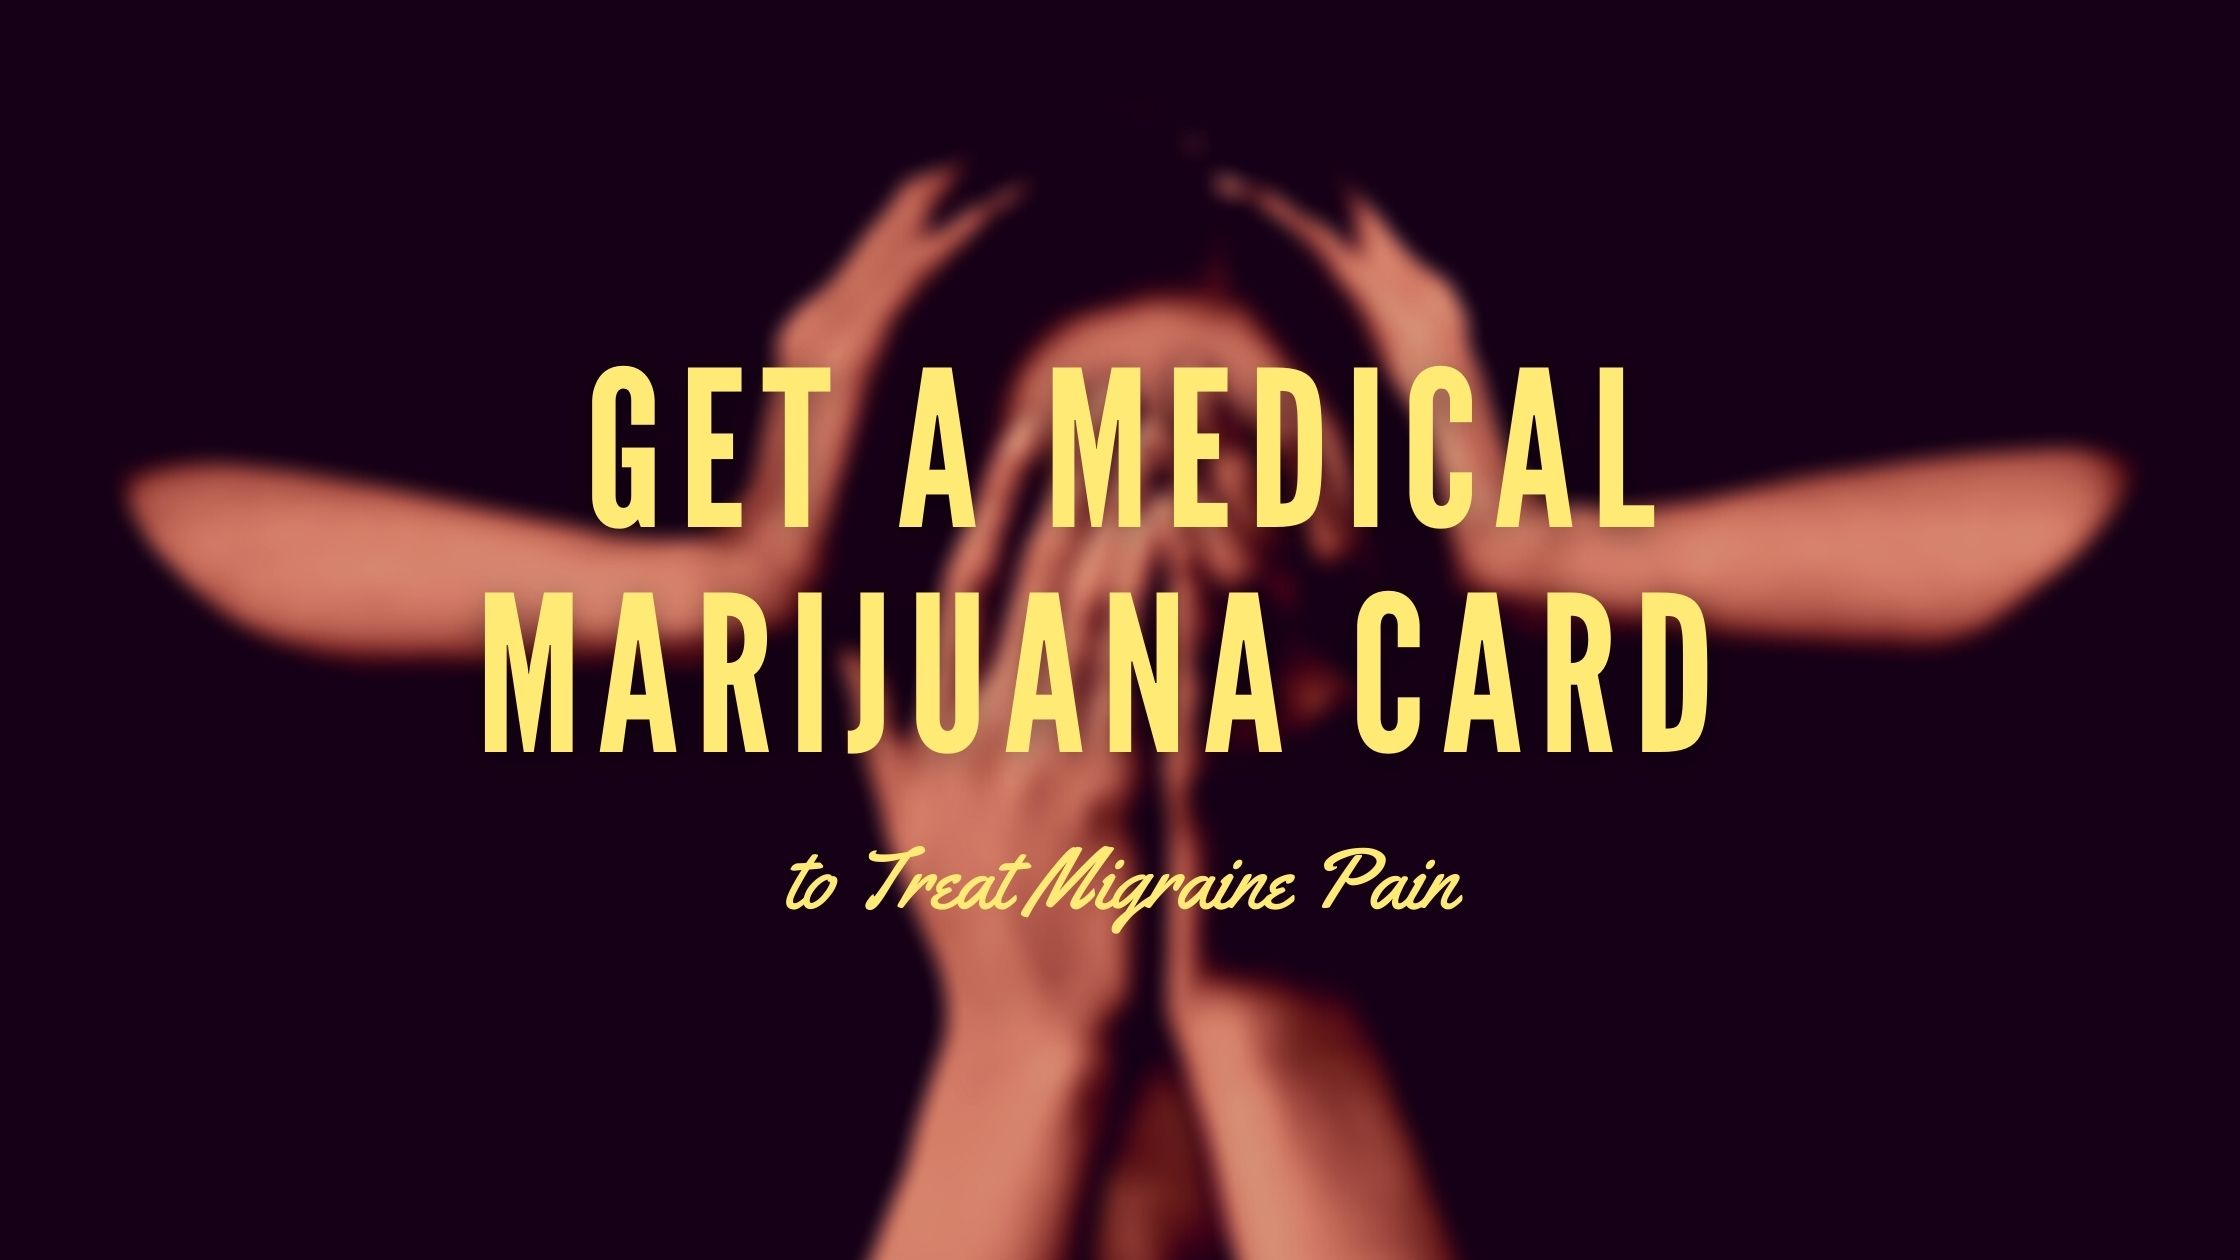 Get a Medical Marijuana Card to Treat Migraine Pain